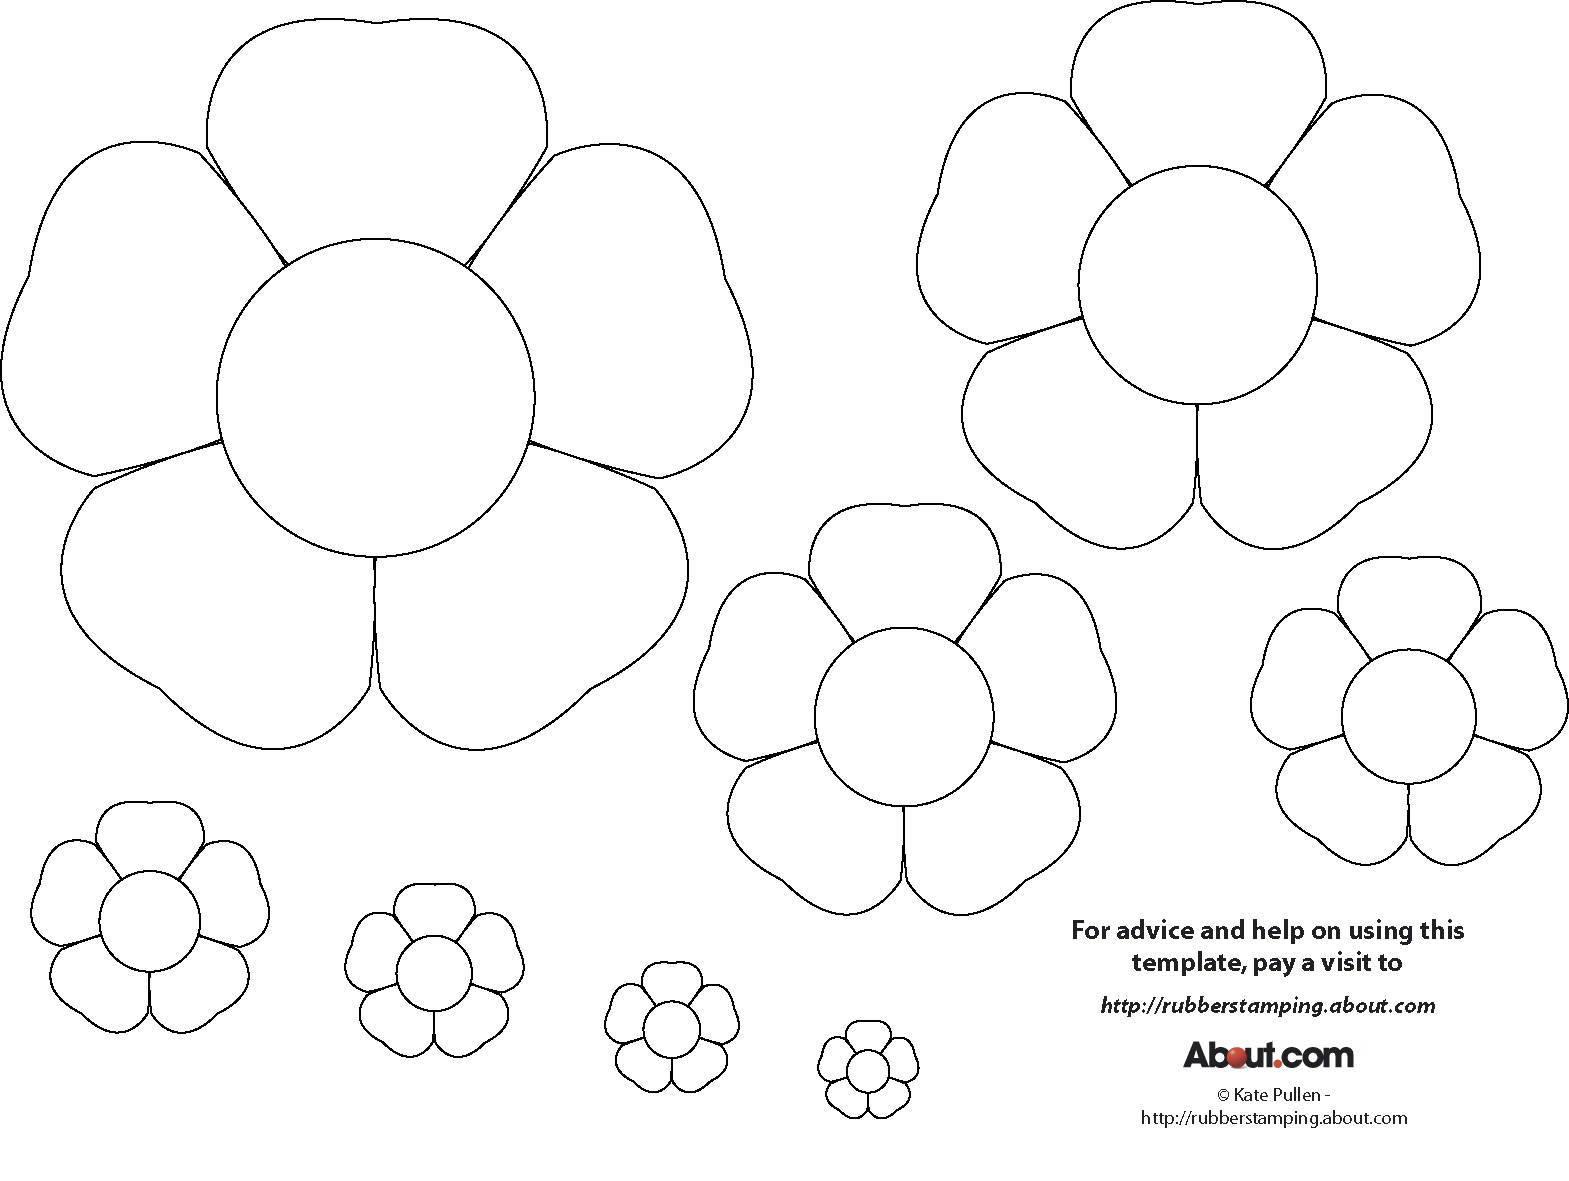 headshot border template - early play templates flower templates free